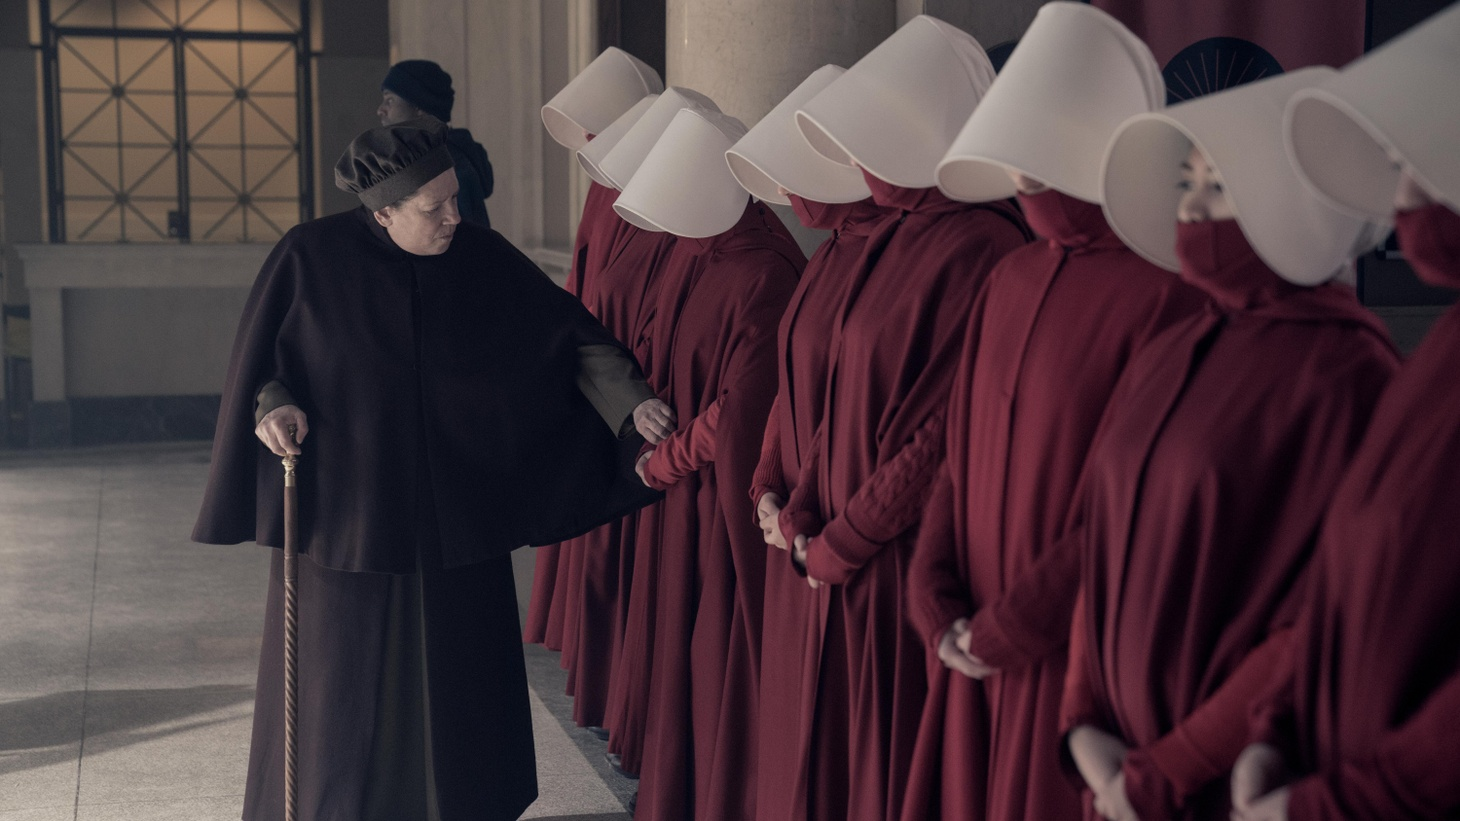 """""""The Handmaid's Tale"""" episode 306: June accompanies the Waterfords to Washington D.C., where a powerful family offers a glimpse of the future of Gilead. June makes an important connection as she attempts to protect Nichole. Aunt Lydia (Ann Dowd), shown."""